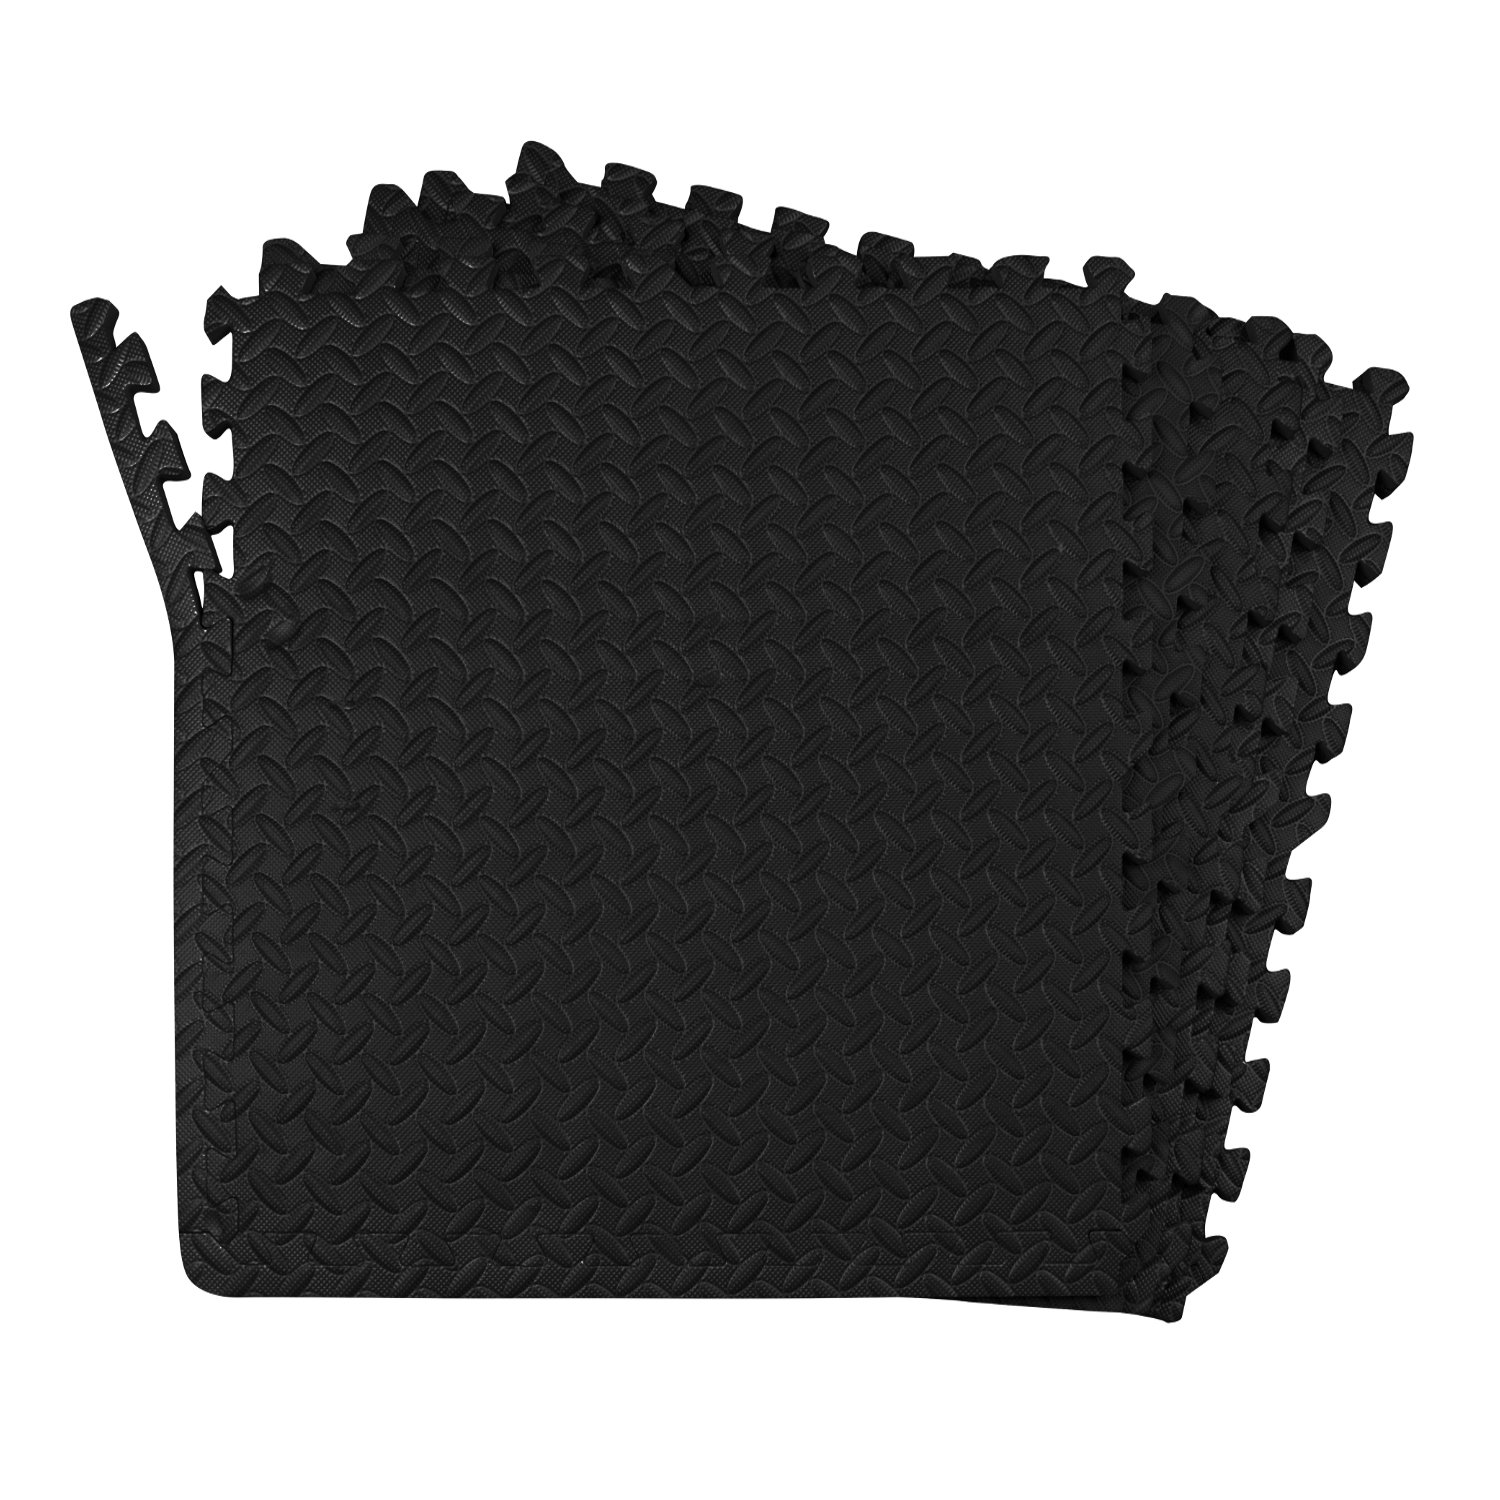 Rubber floor mats workout - 24 Sqft Dark Multi Purpose Floor Mat Anti Fatigue Eva Foam 6 Tile Interlocking Tile With 10 Boarder By Poco Divo